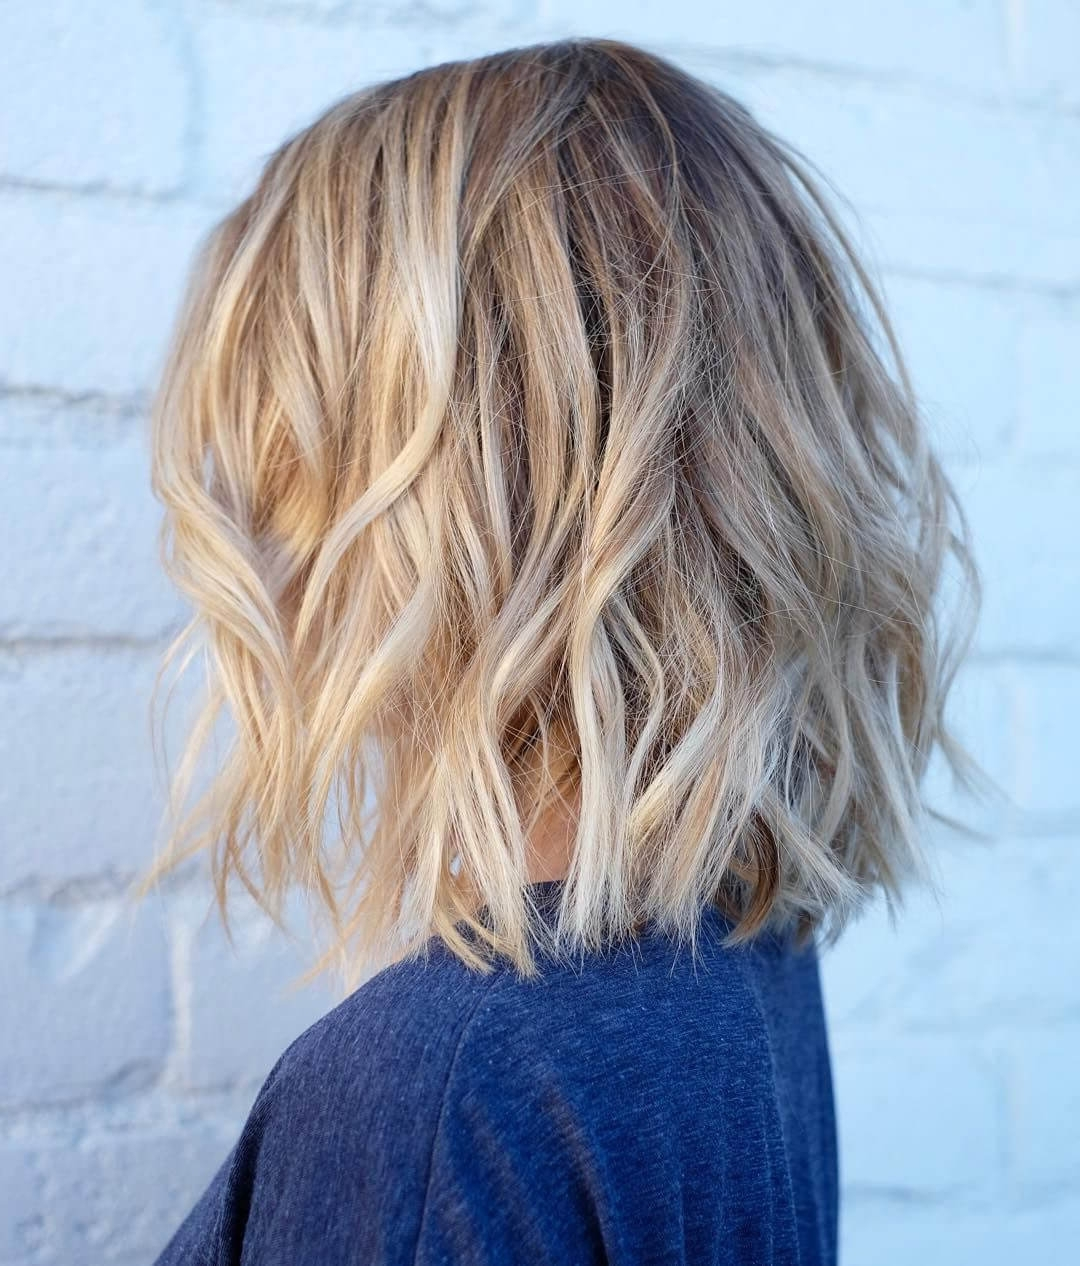 2017 Messy Blonde Lob With Lowlights In 50 Fresh Short Blonde Hair Ideas To Update Your Style In  (View 1 of 20)